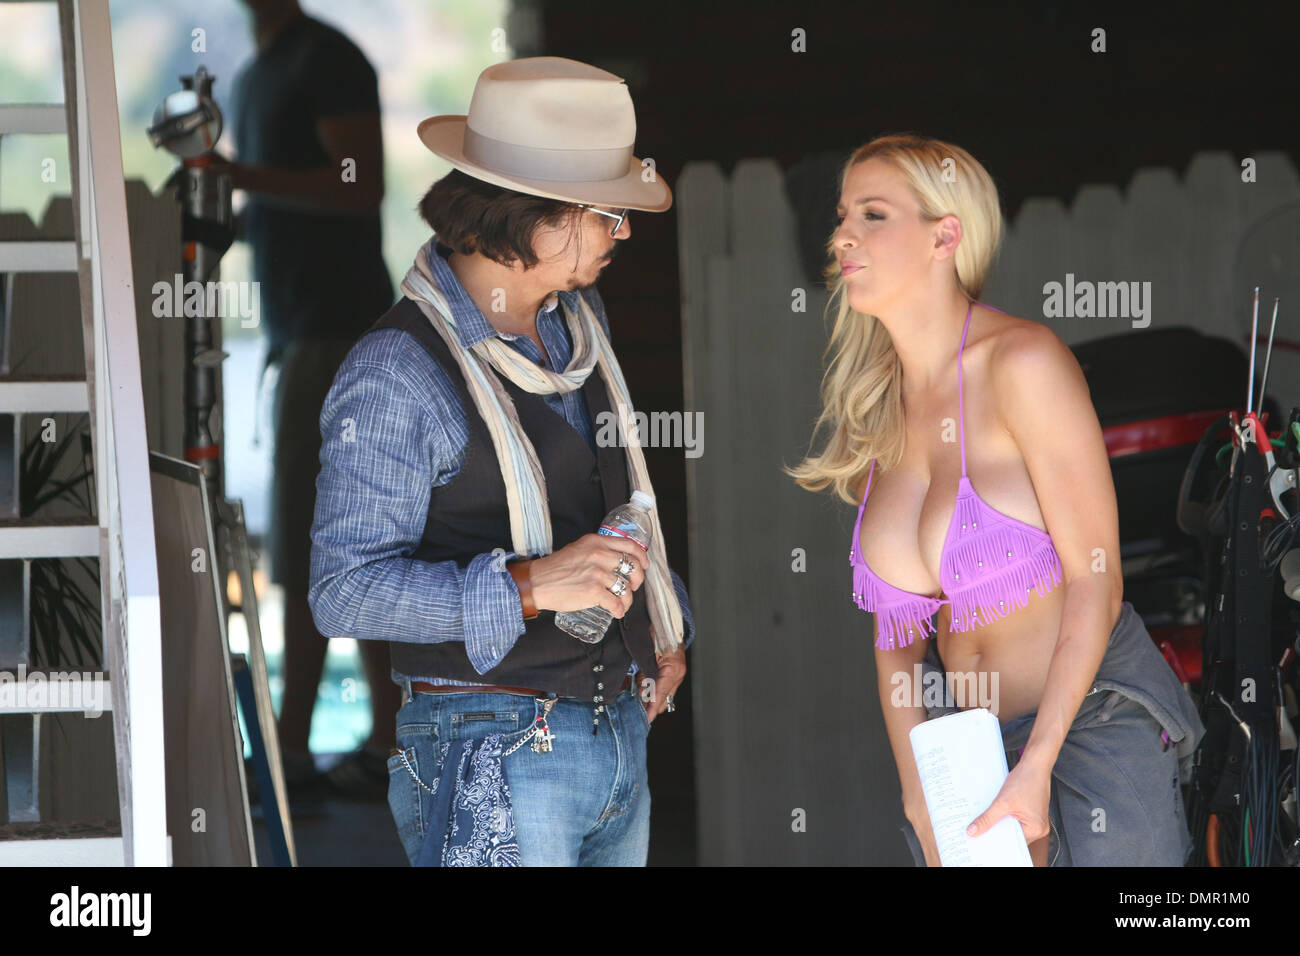 Jordan Carver And A Johnny Depp Look Alike Filming Scenes For Upcoming Film Who